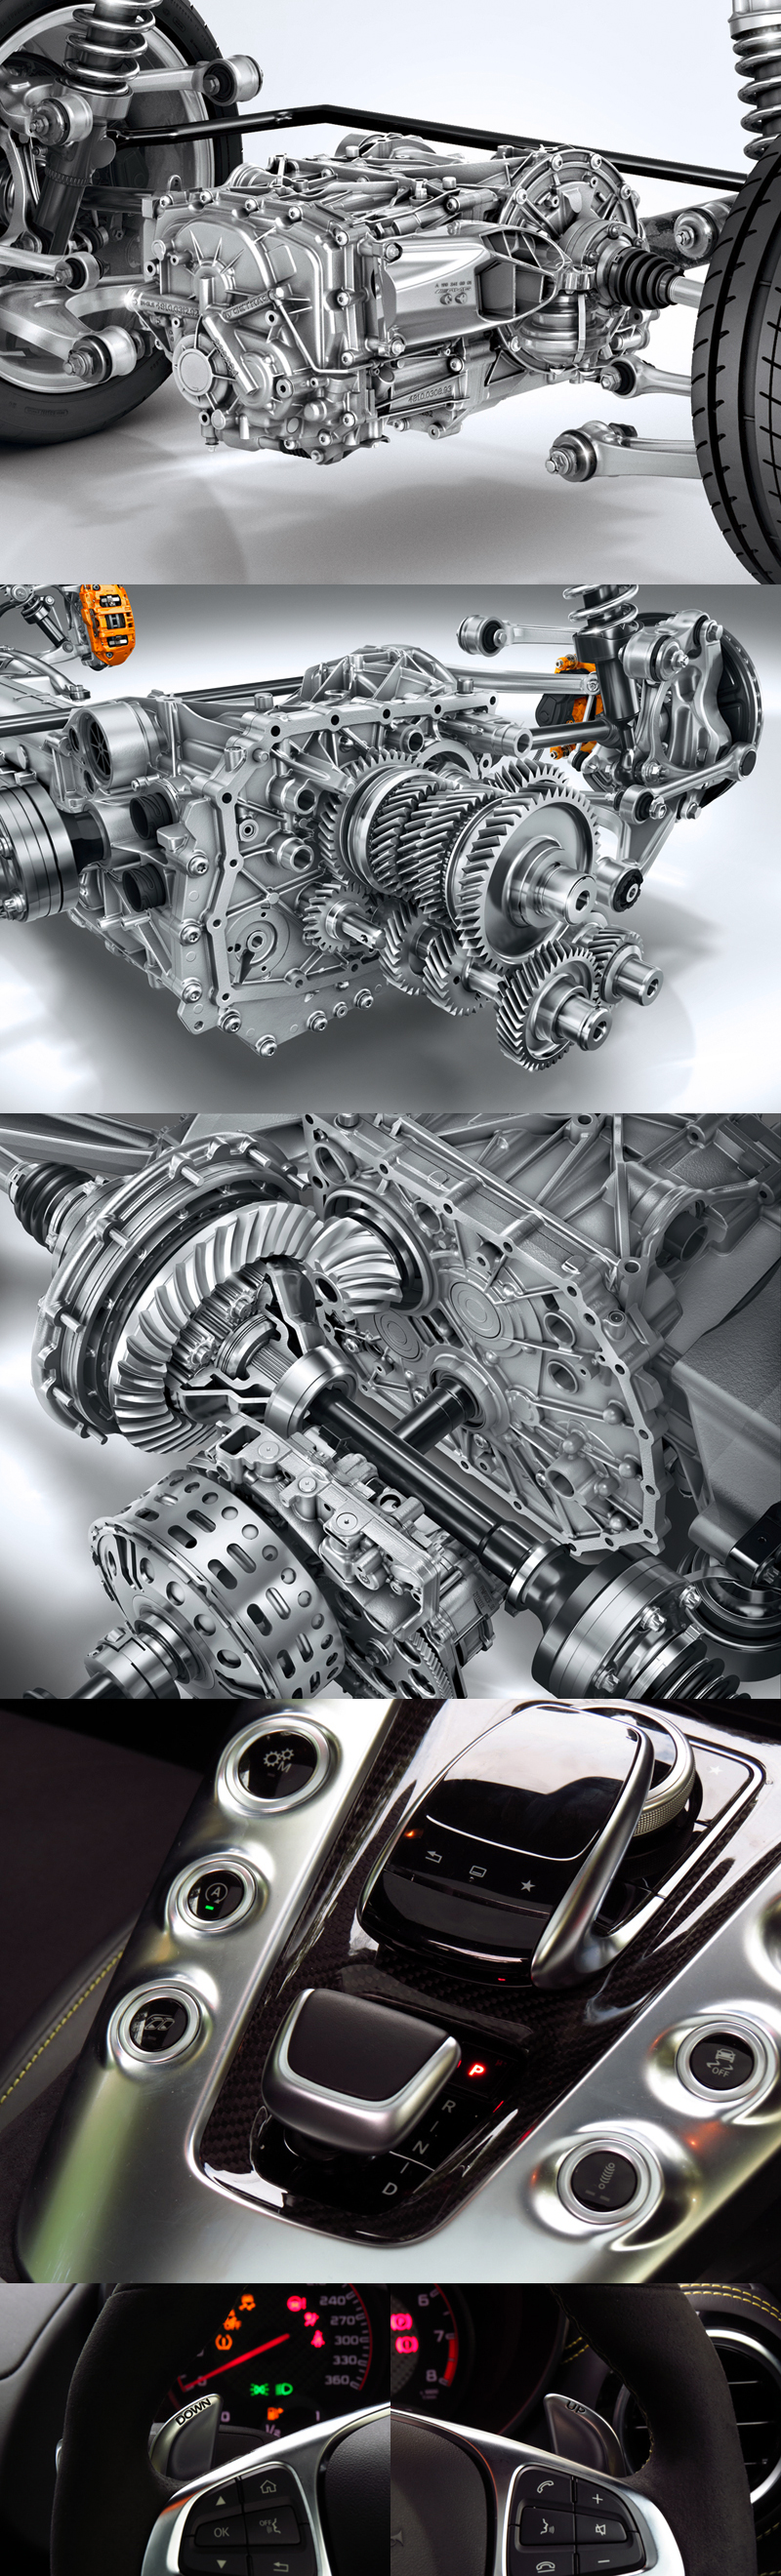 2015_08_Mercedes_Benz_AMG_GT_S_Engine_03_Transmission